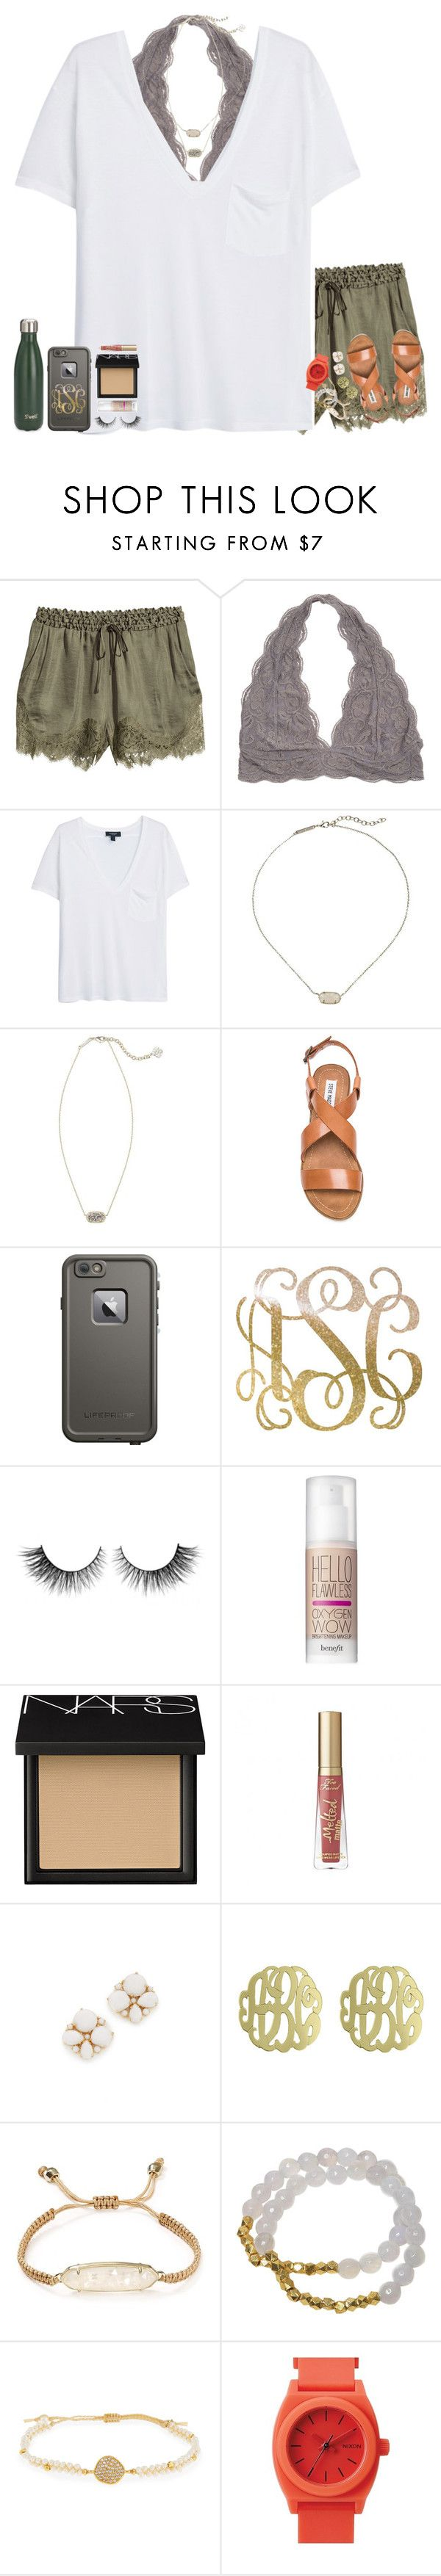 """""""•be a pineapple; one who can be entertaining for 2 hours•"""" by cfc-28-sc ❤ liked on Polyvore featuring H&M, MANGO, Kendra Scott, Steve Madden, LifeProof, Rimini, Benefit, NARS Cosmetics, Kate Spade and Initial Reaction"""